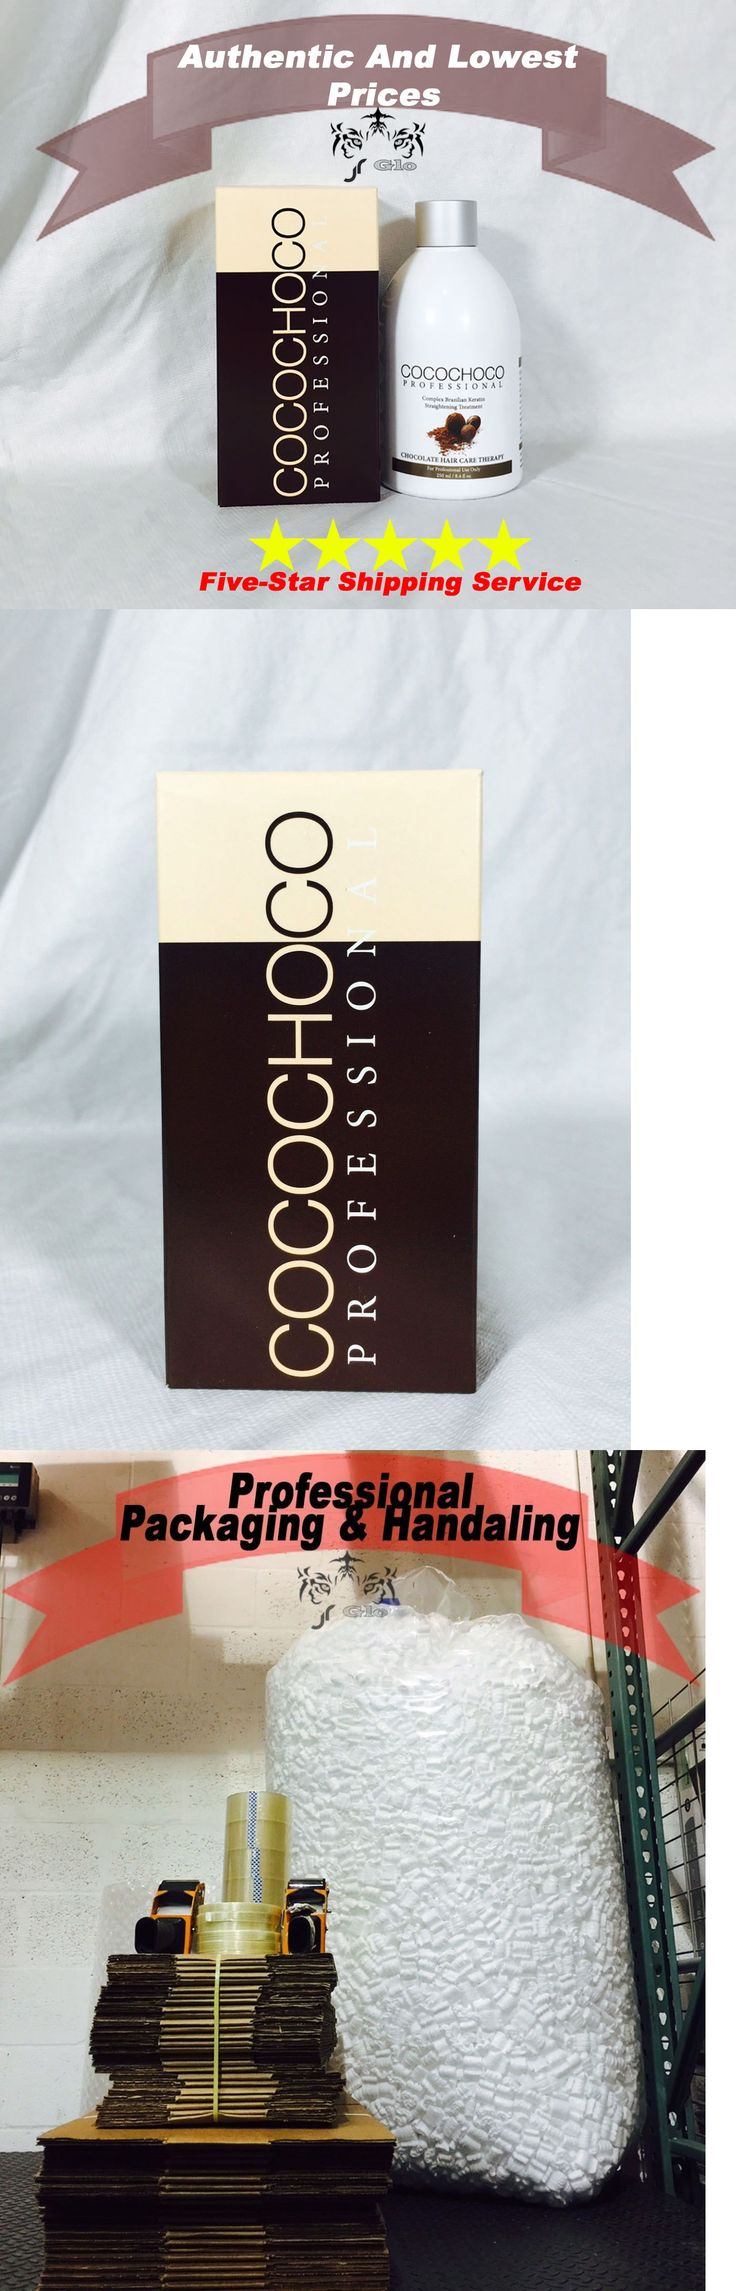 Relaxers and Straightening Prod: Cocochoco Original Brazilian Keratin Hair Treatment 8.4Oz 250Ml -> BUY IT NOW ONLY: $35.95 on eBay!